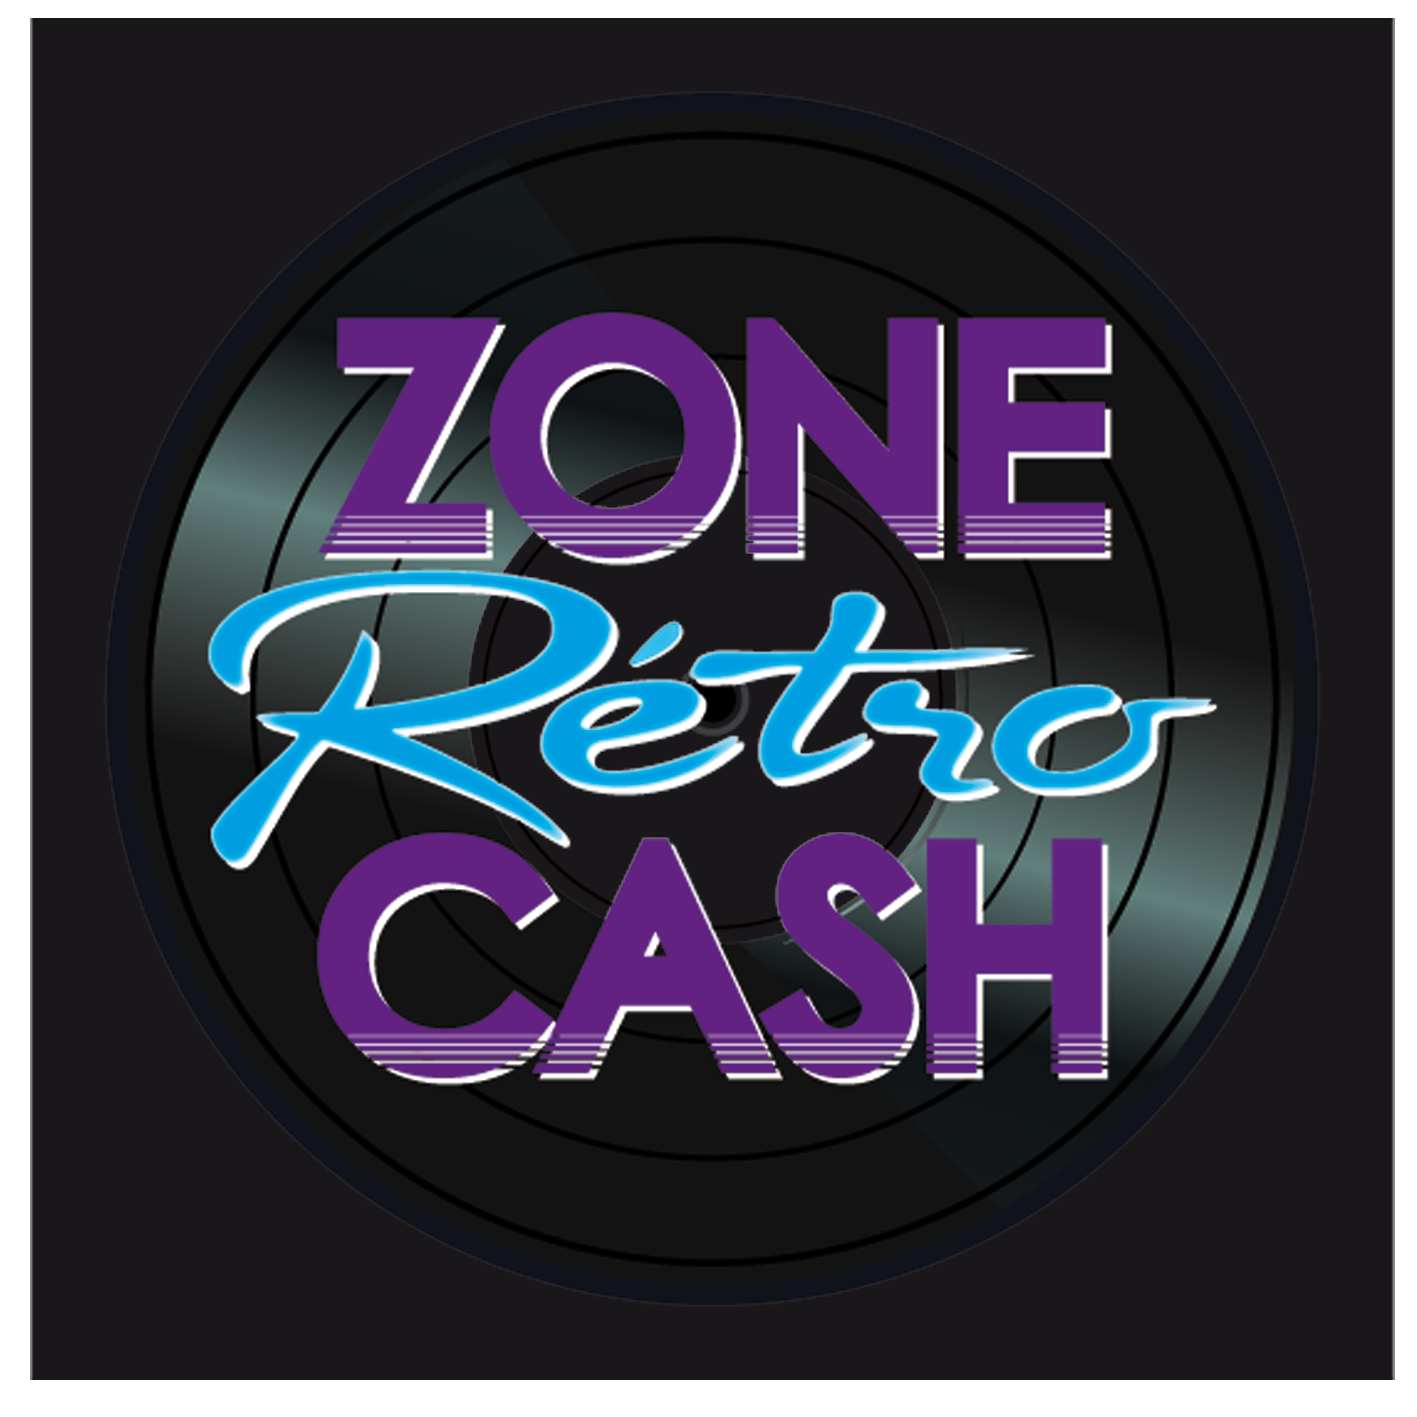 photo de la boutique zone rétro cash